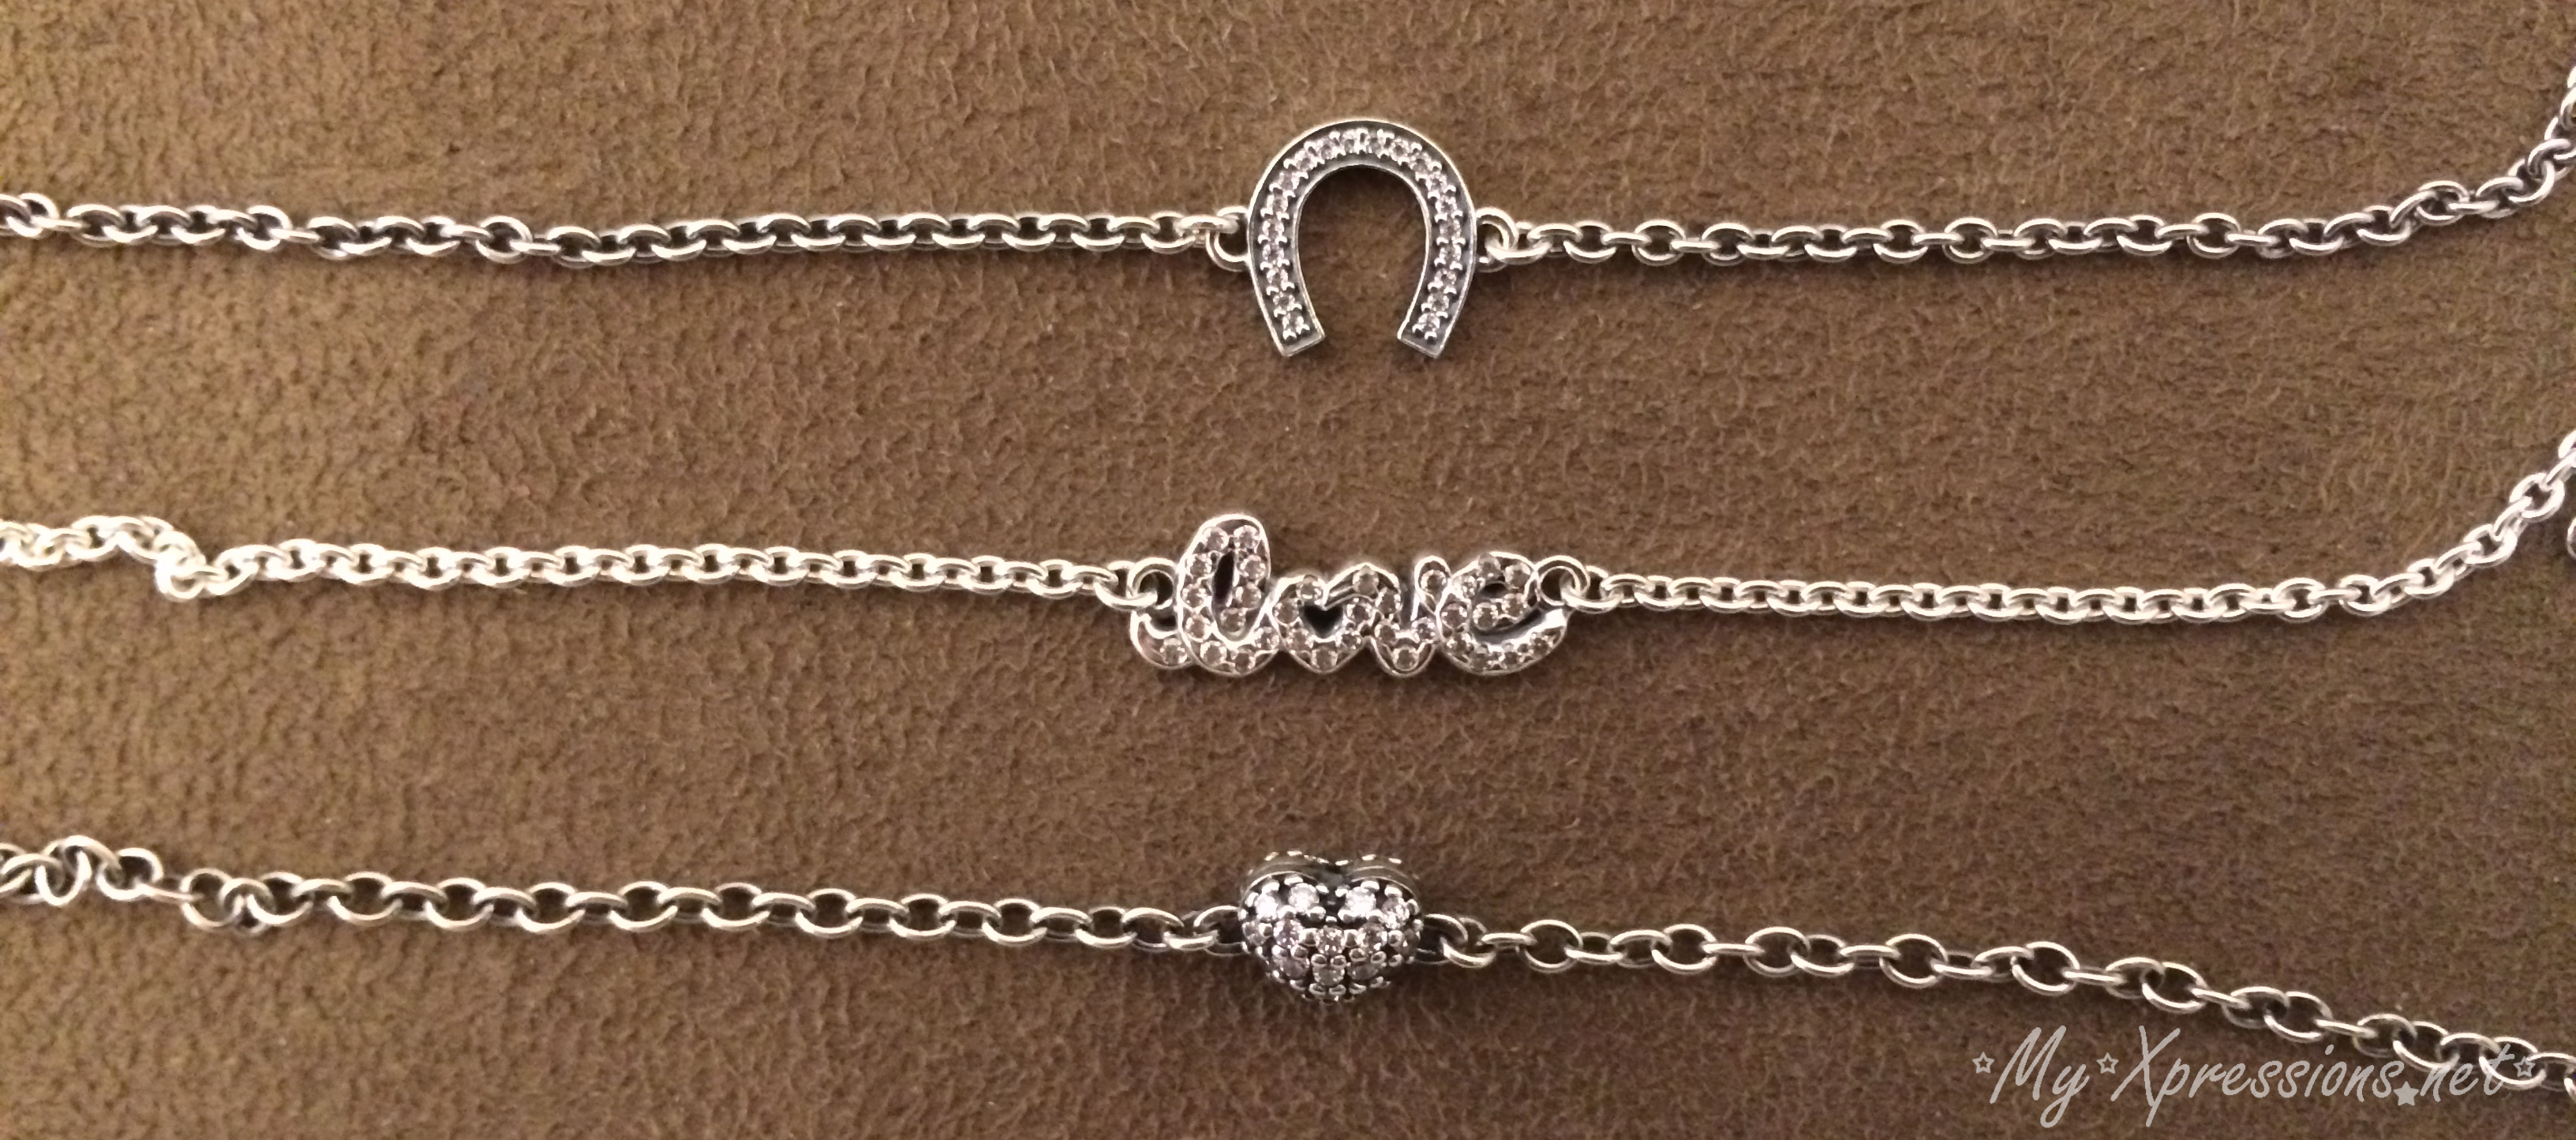 1a92bdff5 FYI: Pandora Heart Pave Bracelet and other symbol bracelets – My ...